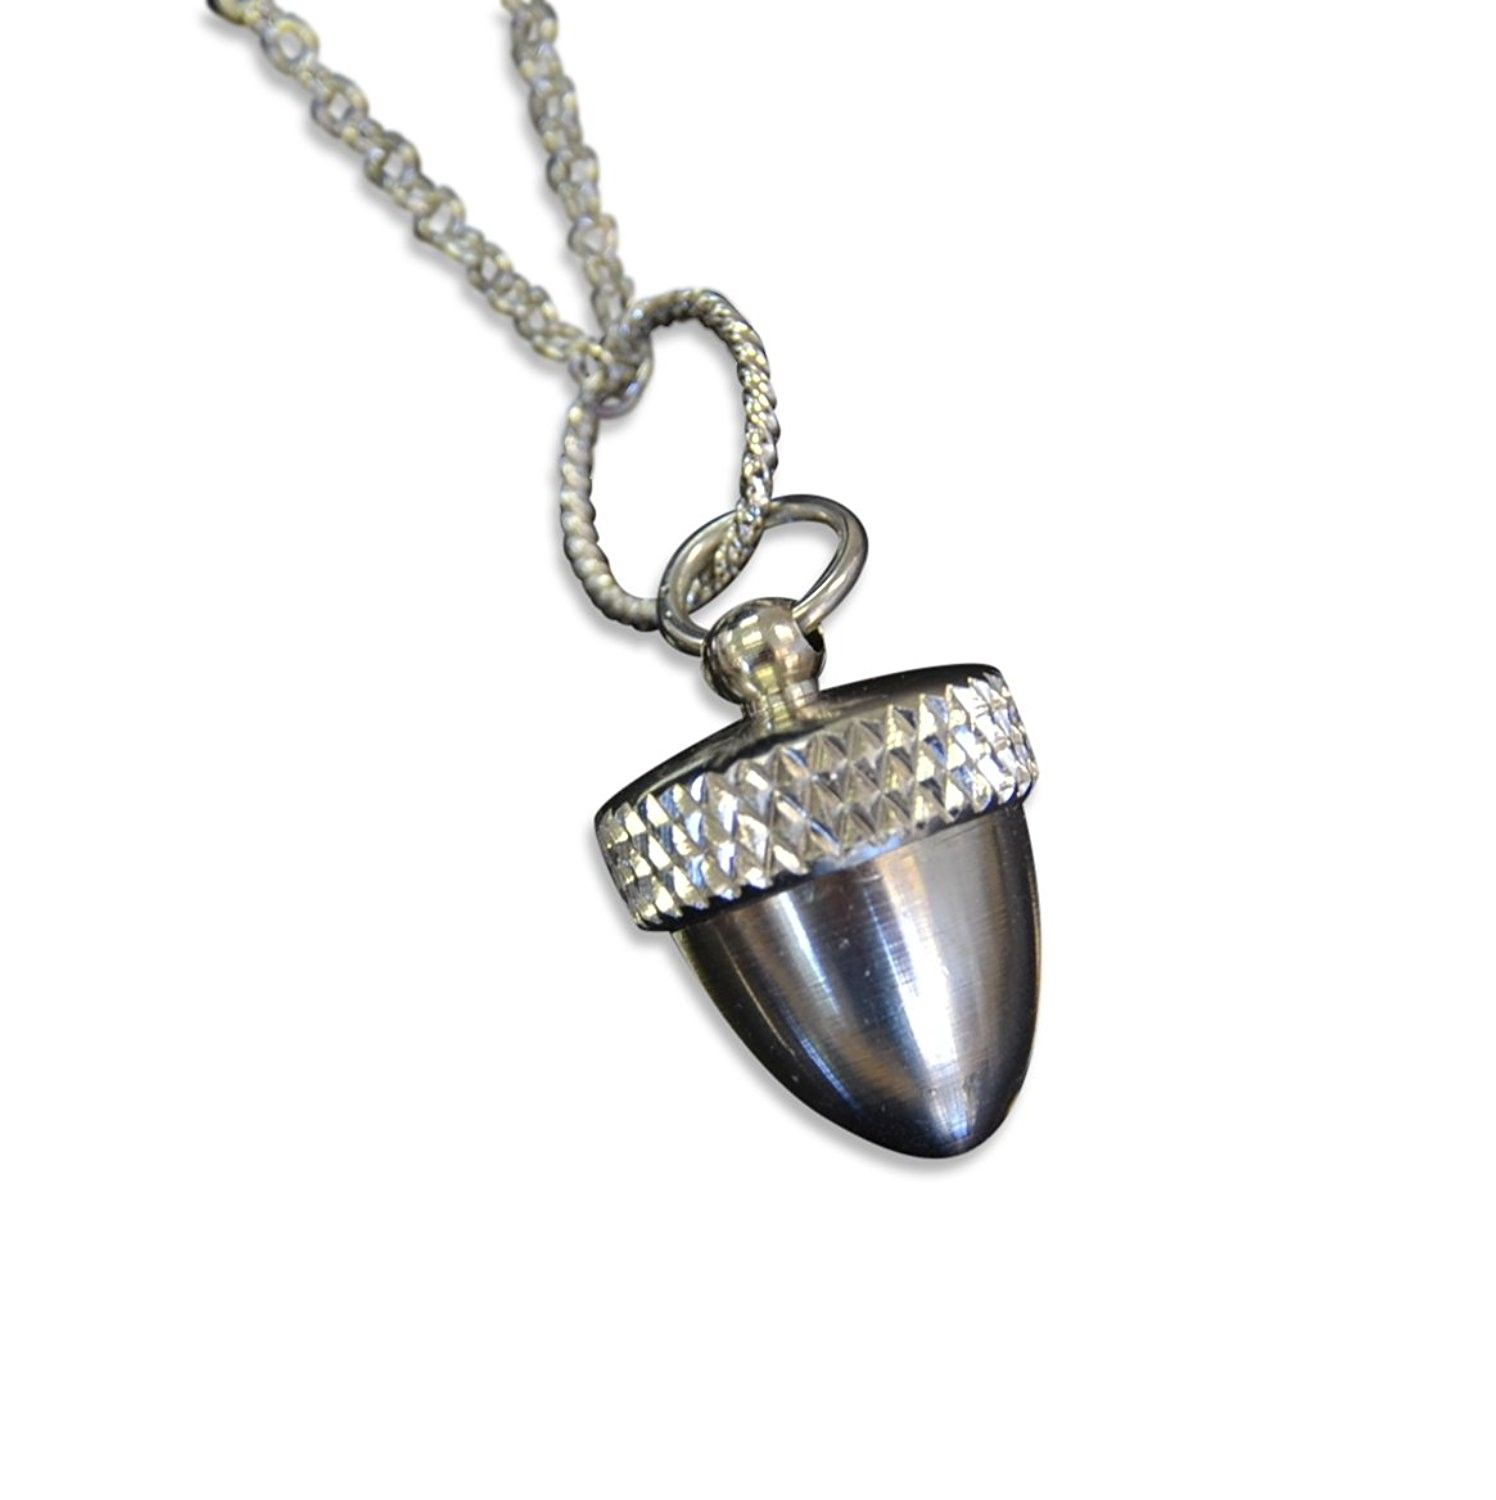 Stainless steel acorn capsule pendant necklace screw top cremation